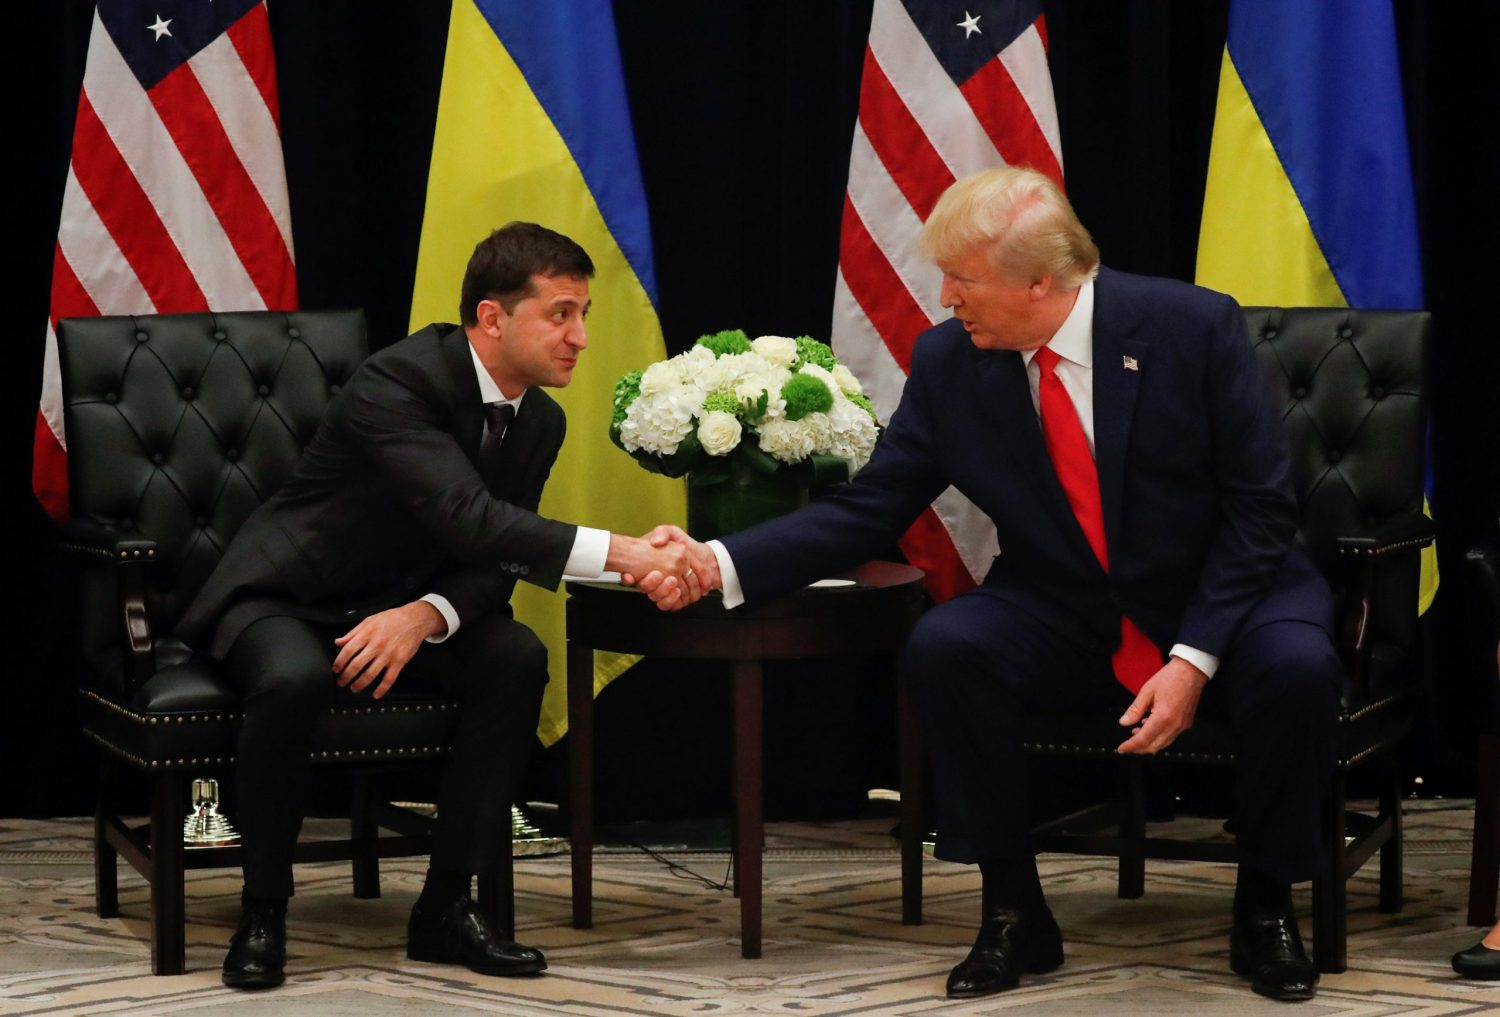 US-Ukraine ties after the impeachment drama